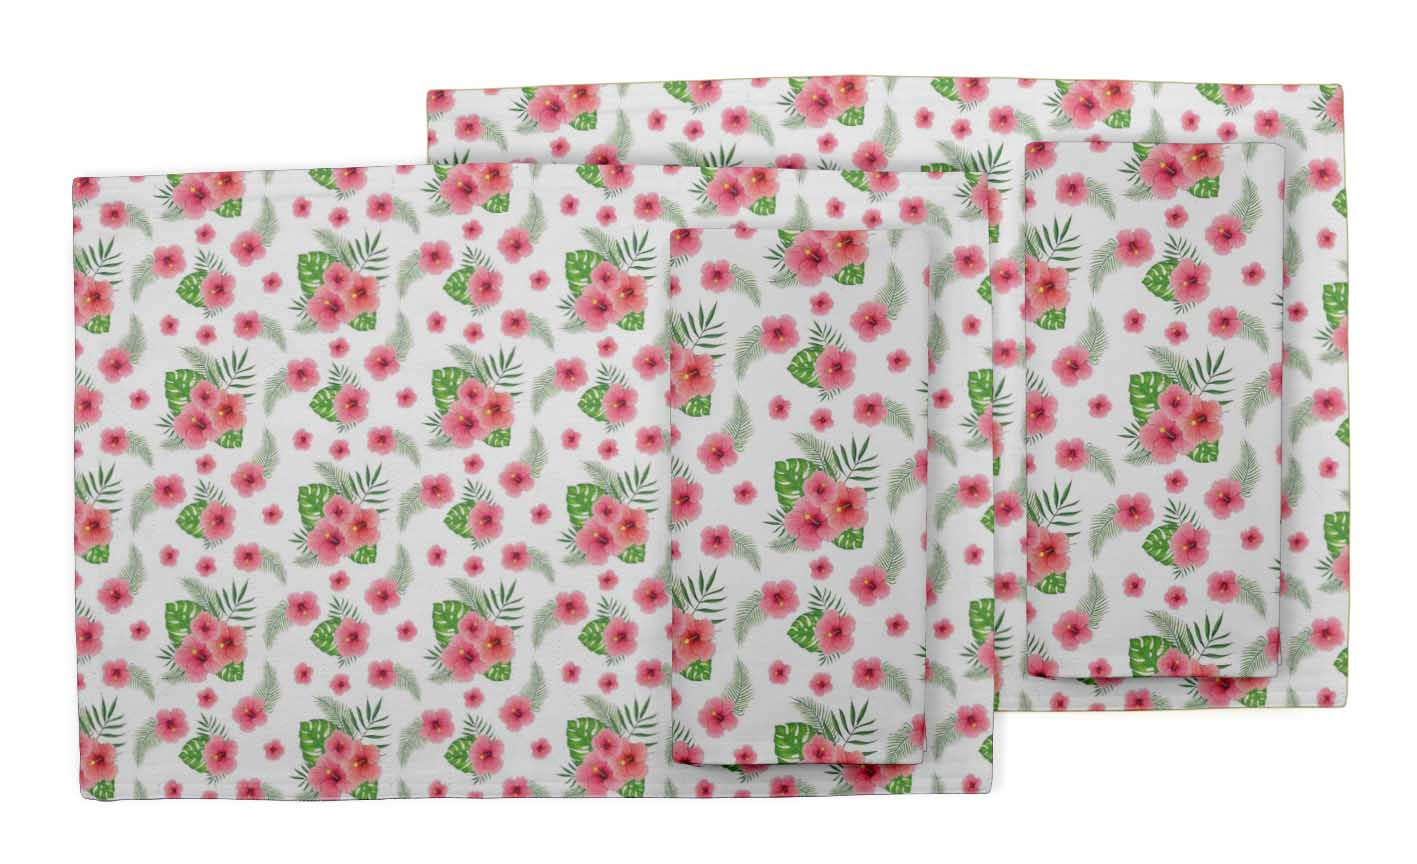 Details about  /S4Sassy Leaves /& Water Lily Floral Washable Tablemats With Napkins Set-FL-612P